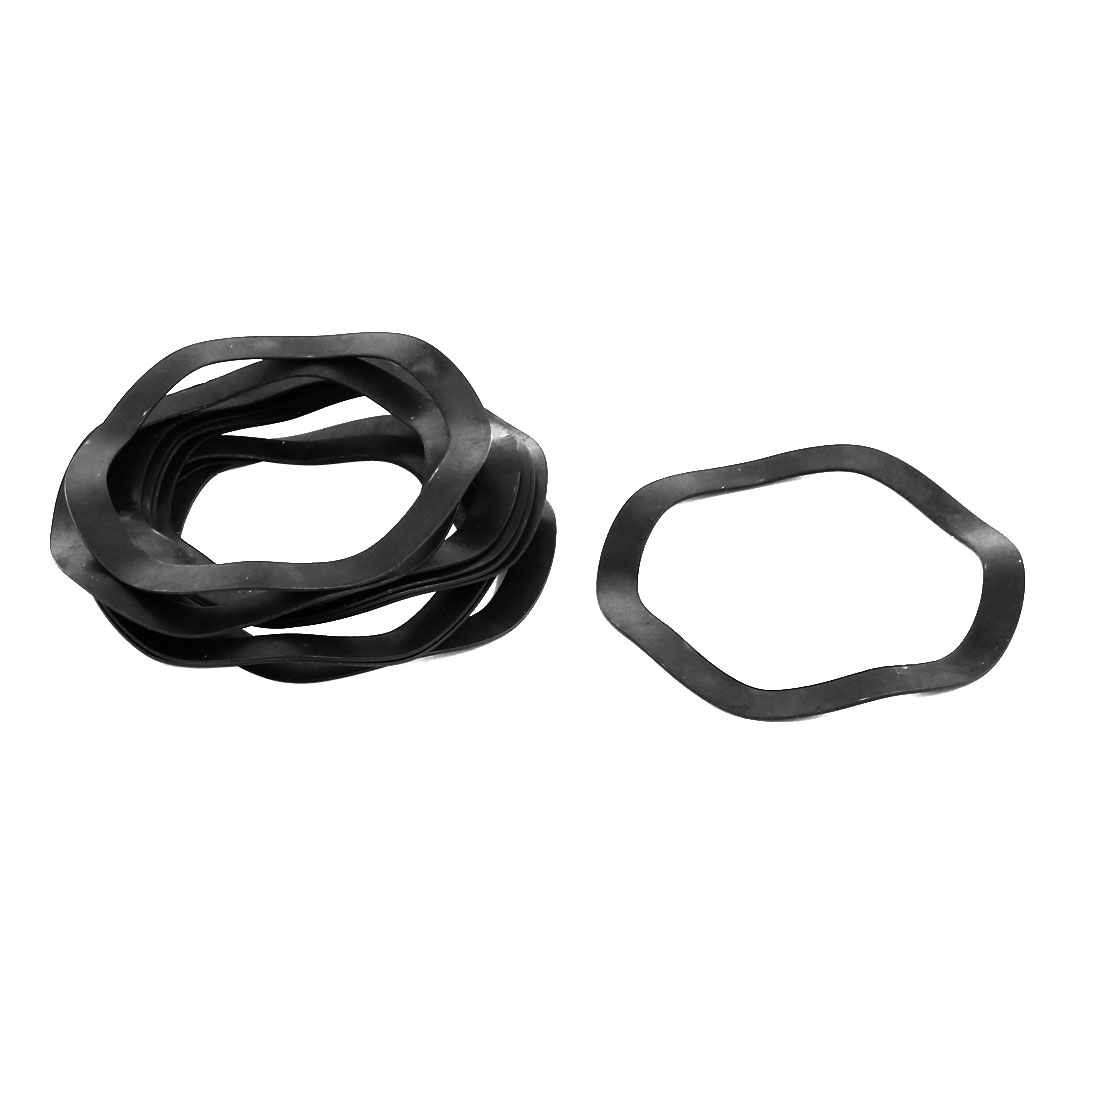 40mm Inner Dia 50mm Outer Dia 0.5mm Thickness Compression Type Wave Washer 10pcs